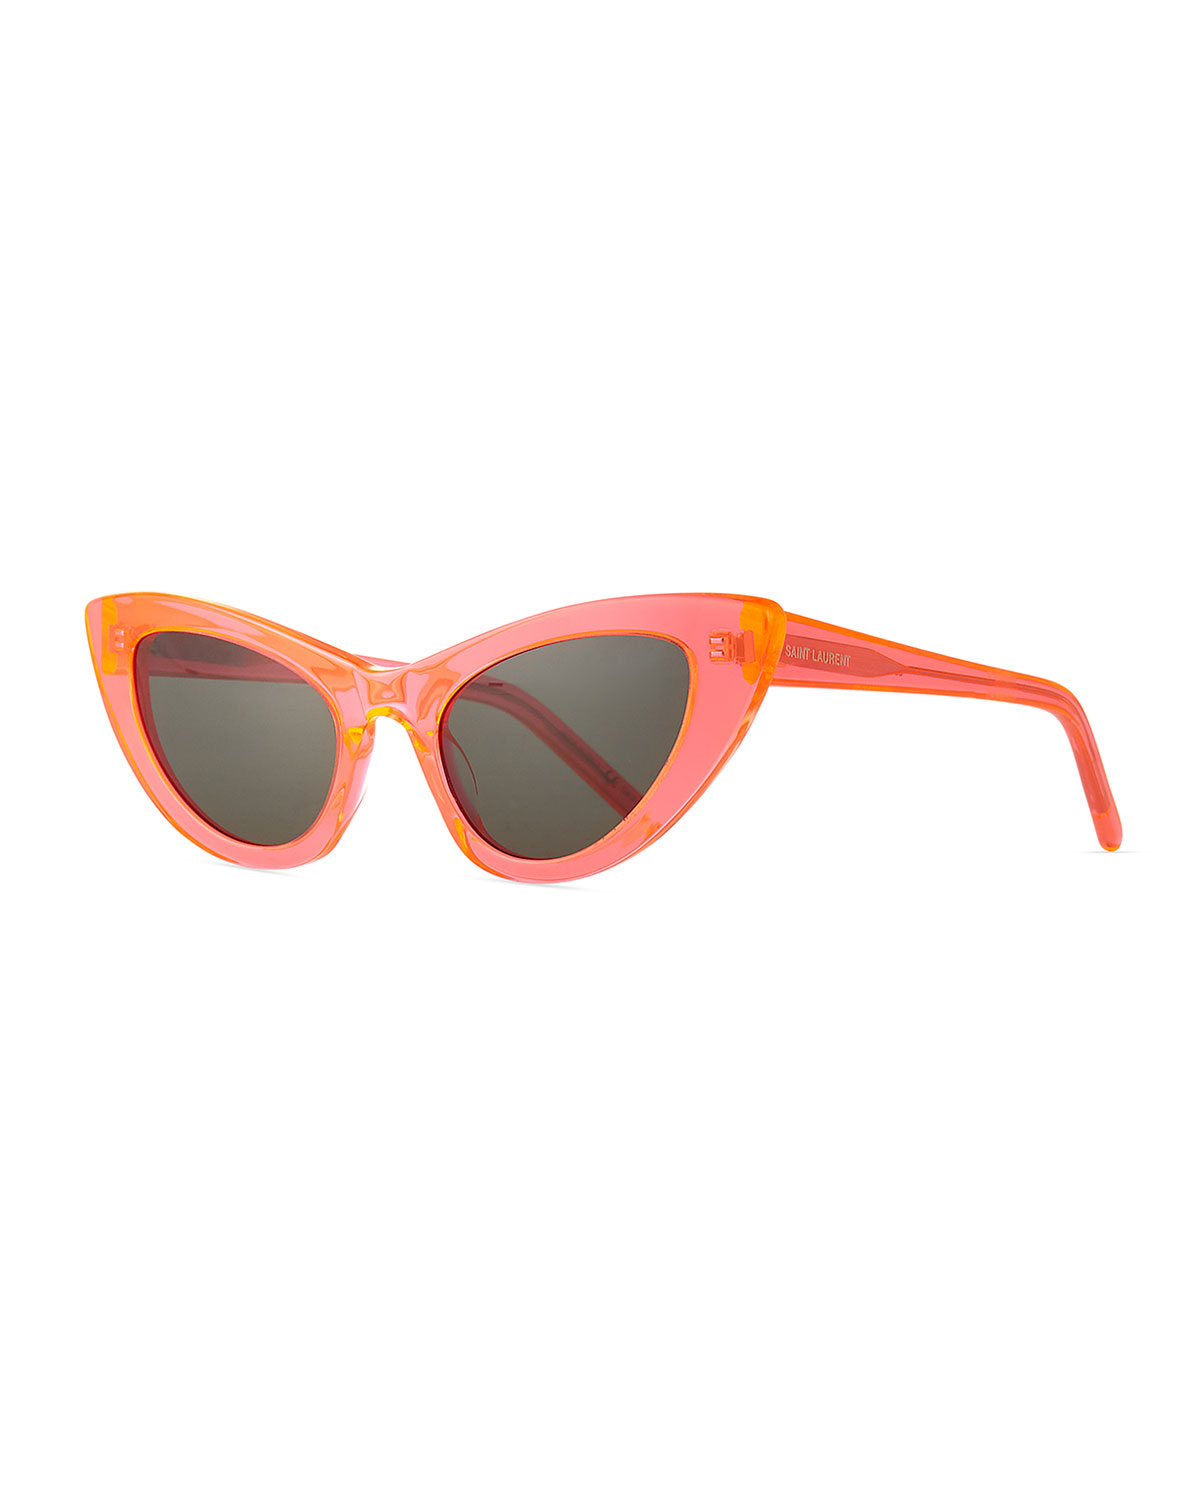 a0f740afd6 Saint Laurent Lily Cat-Eye Acetate Sunglasses